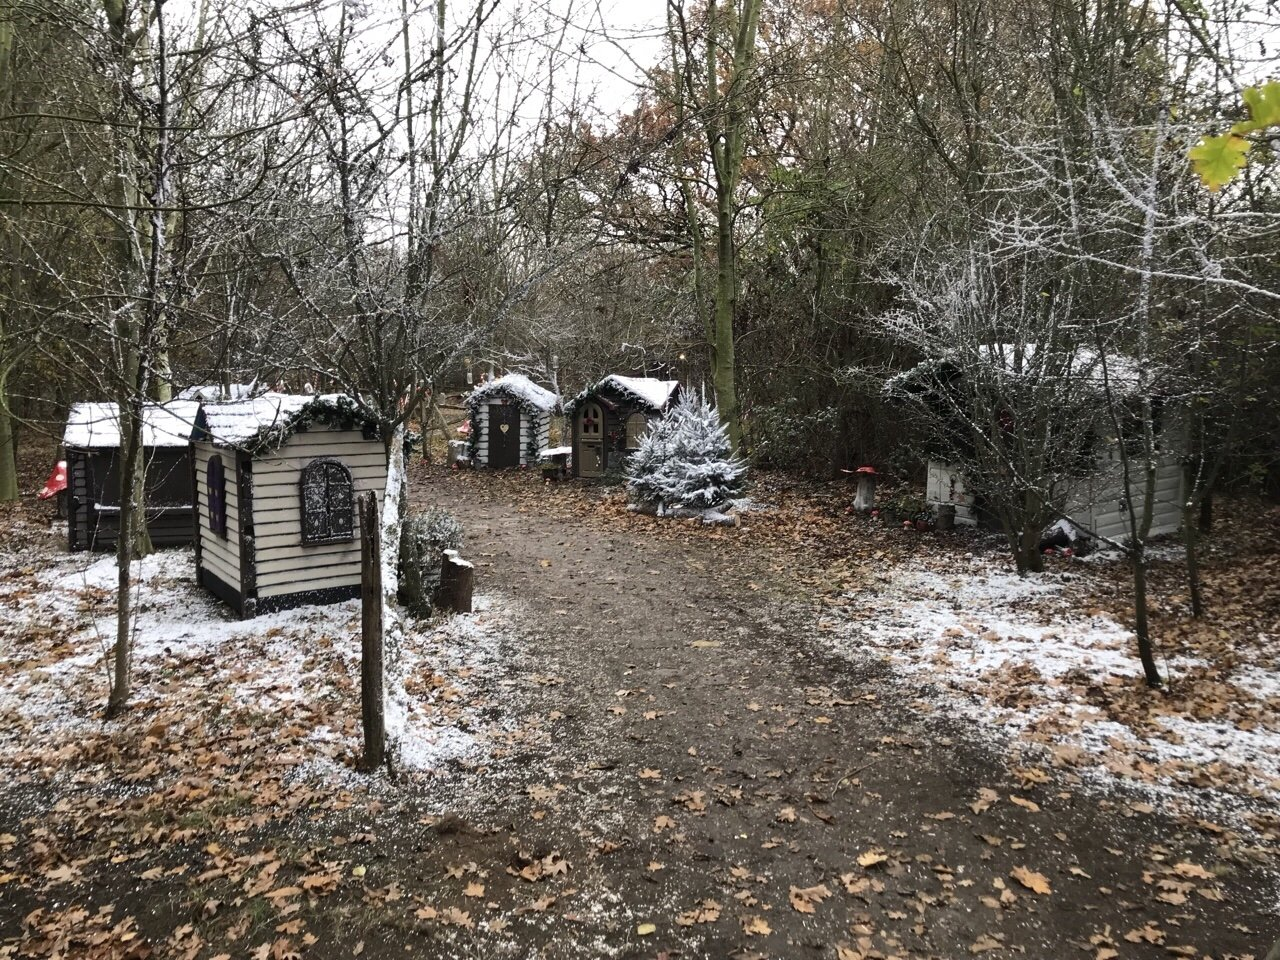 Winter cabins An Elf's Wish at Nevendon Manor